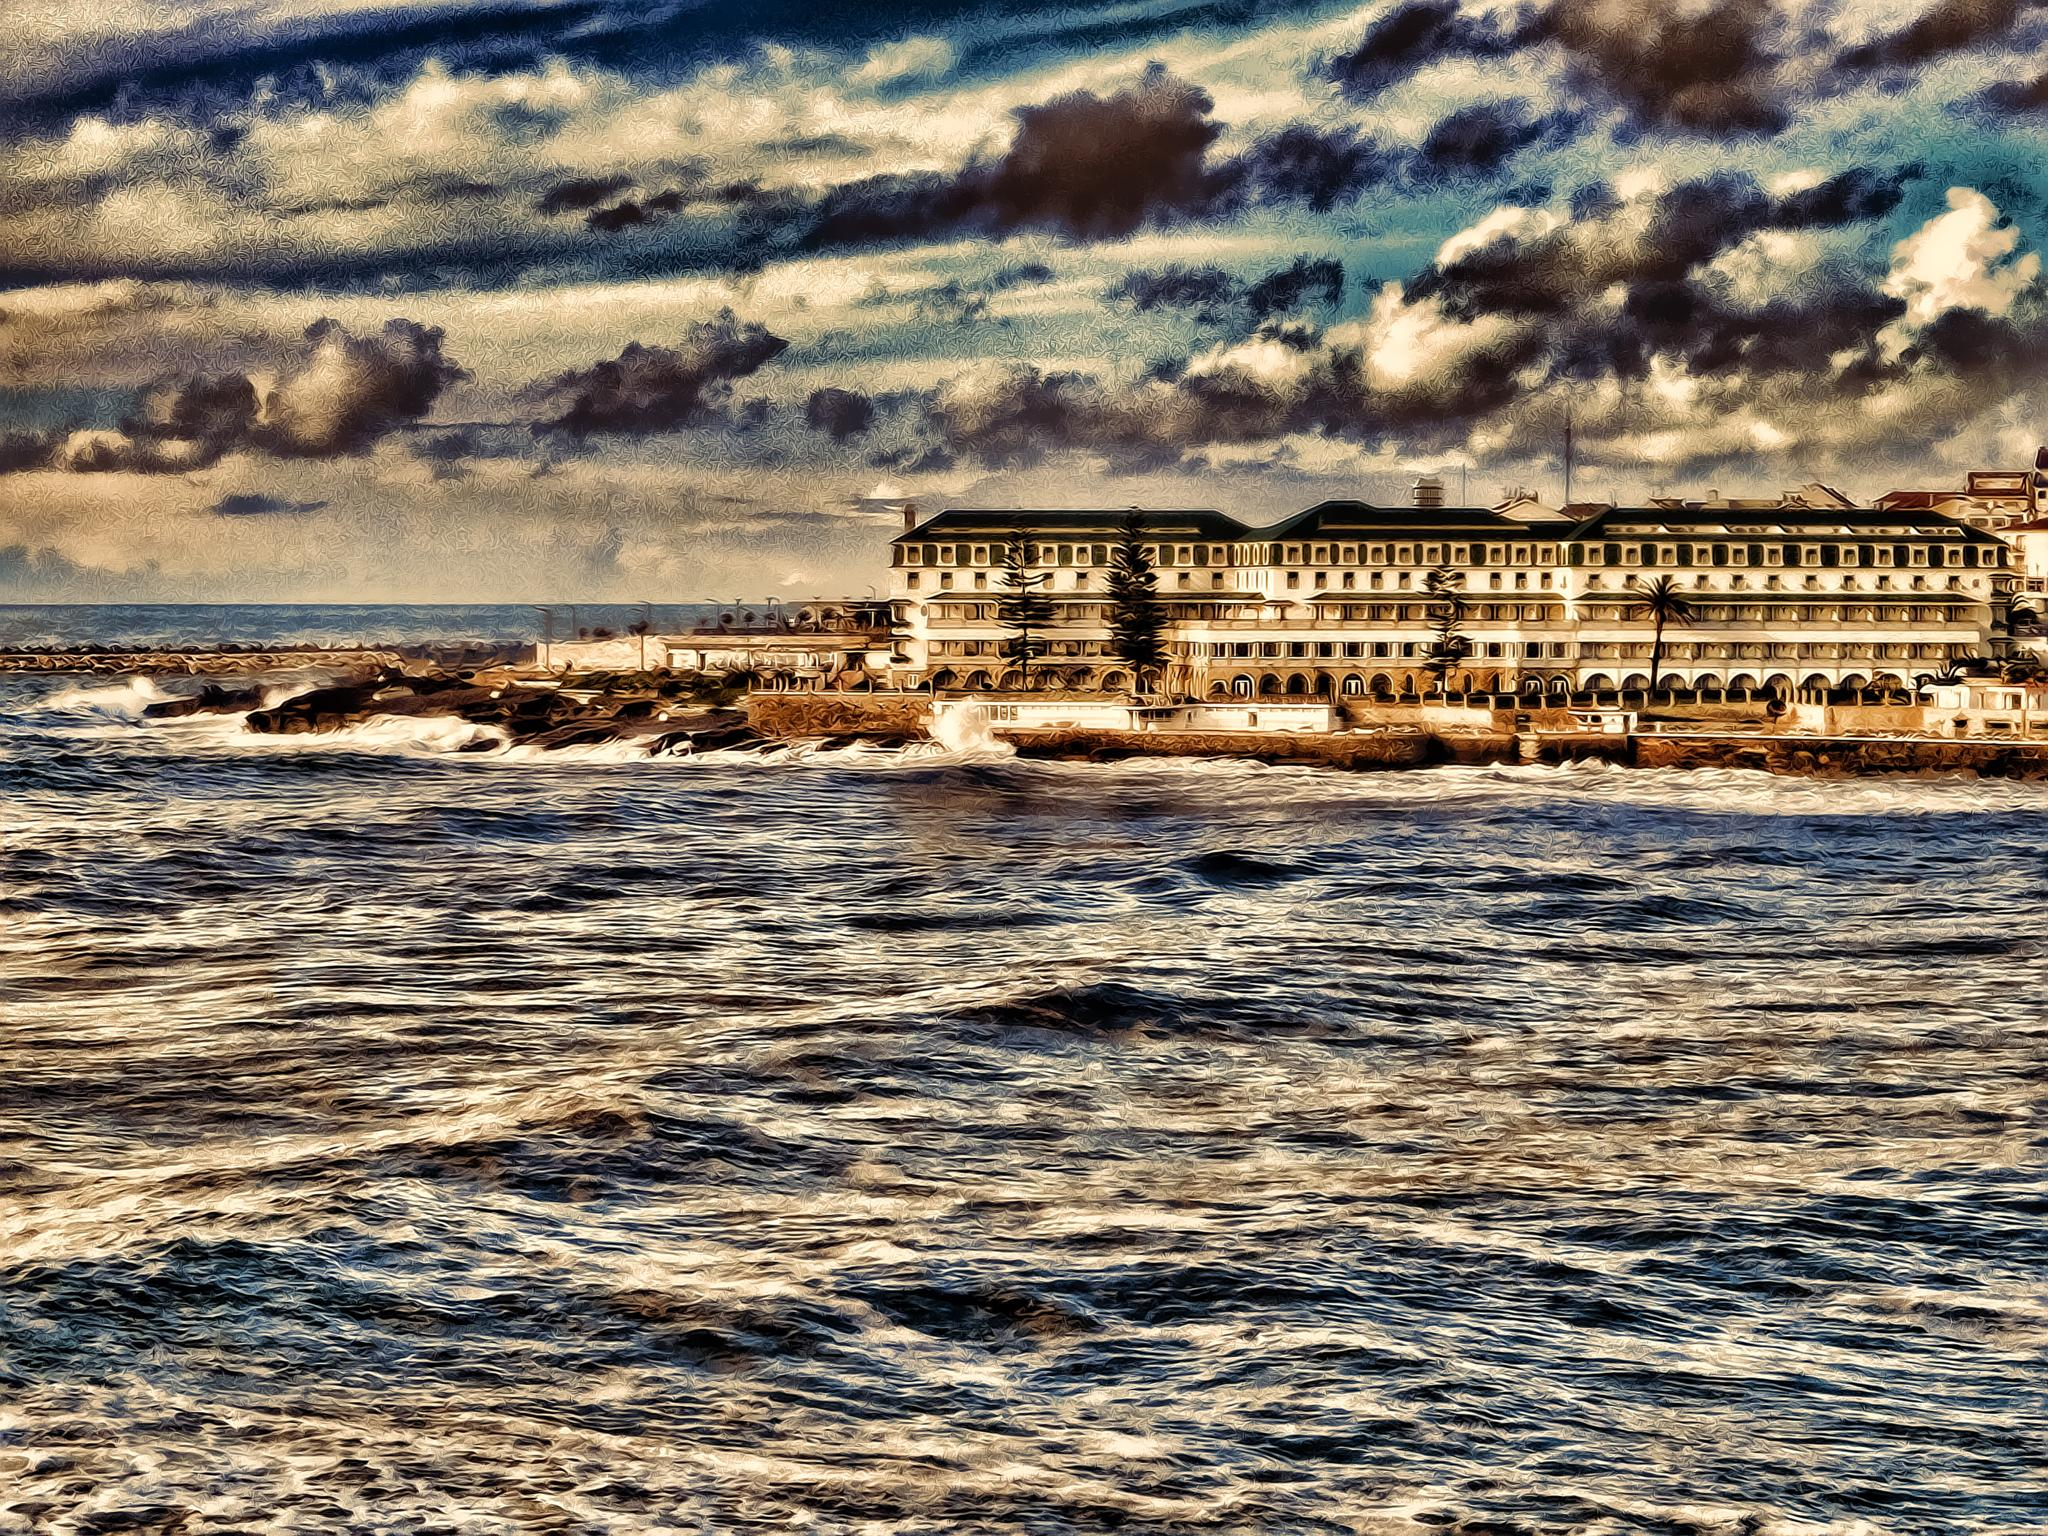 Old hotel on a ocean by Tamara M. Silvestre